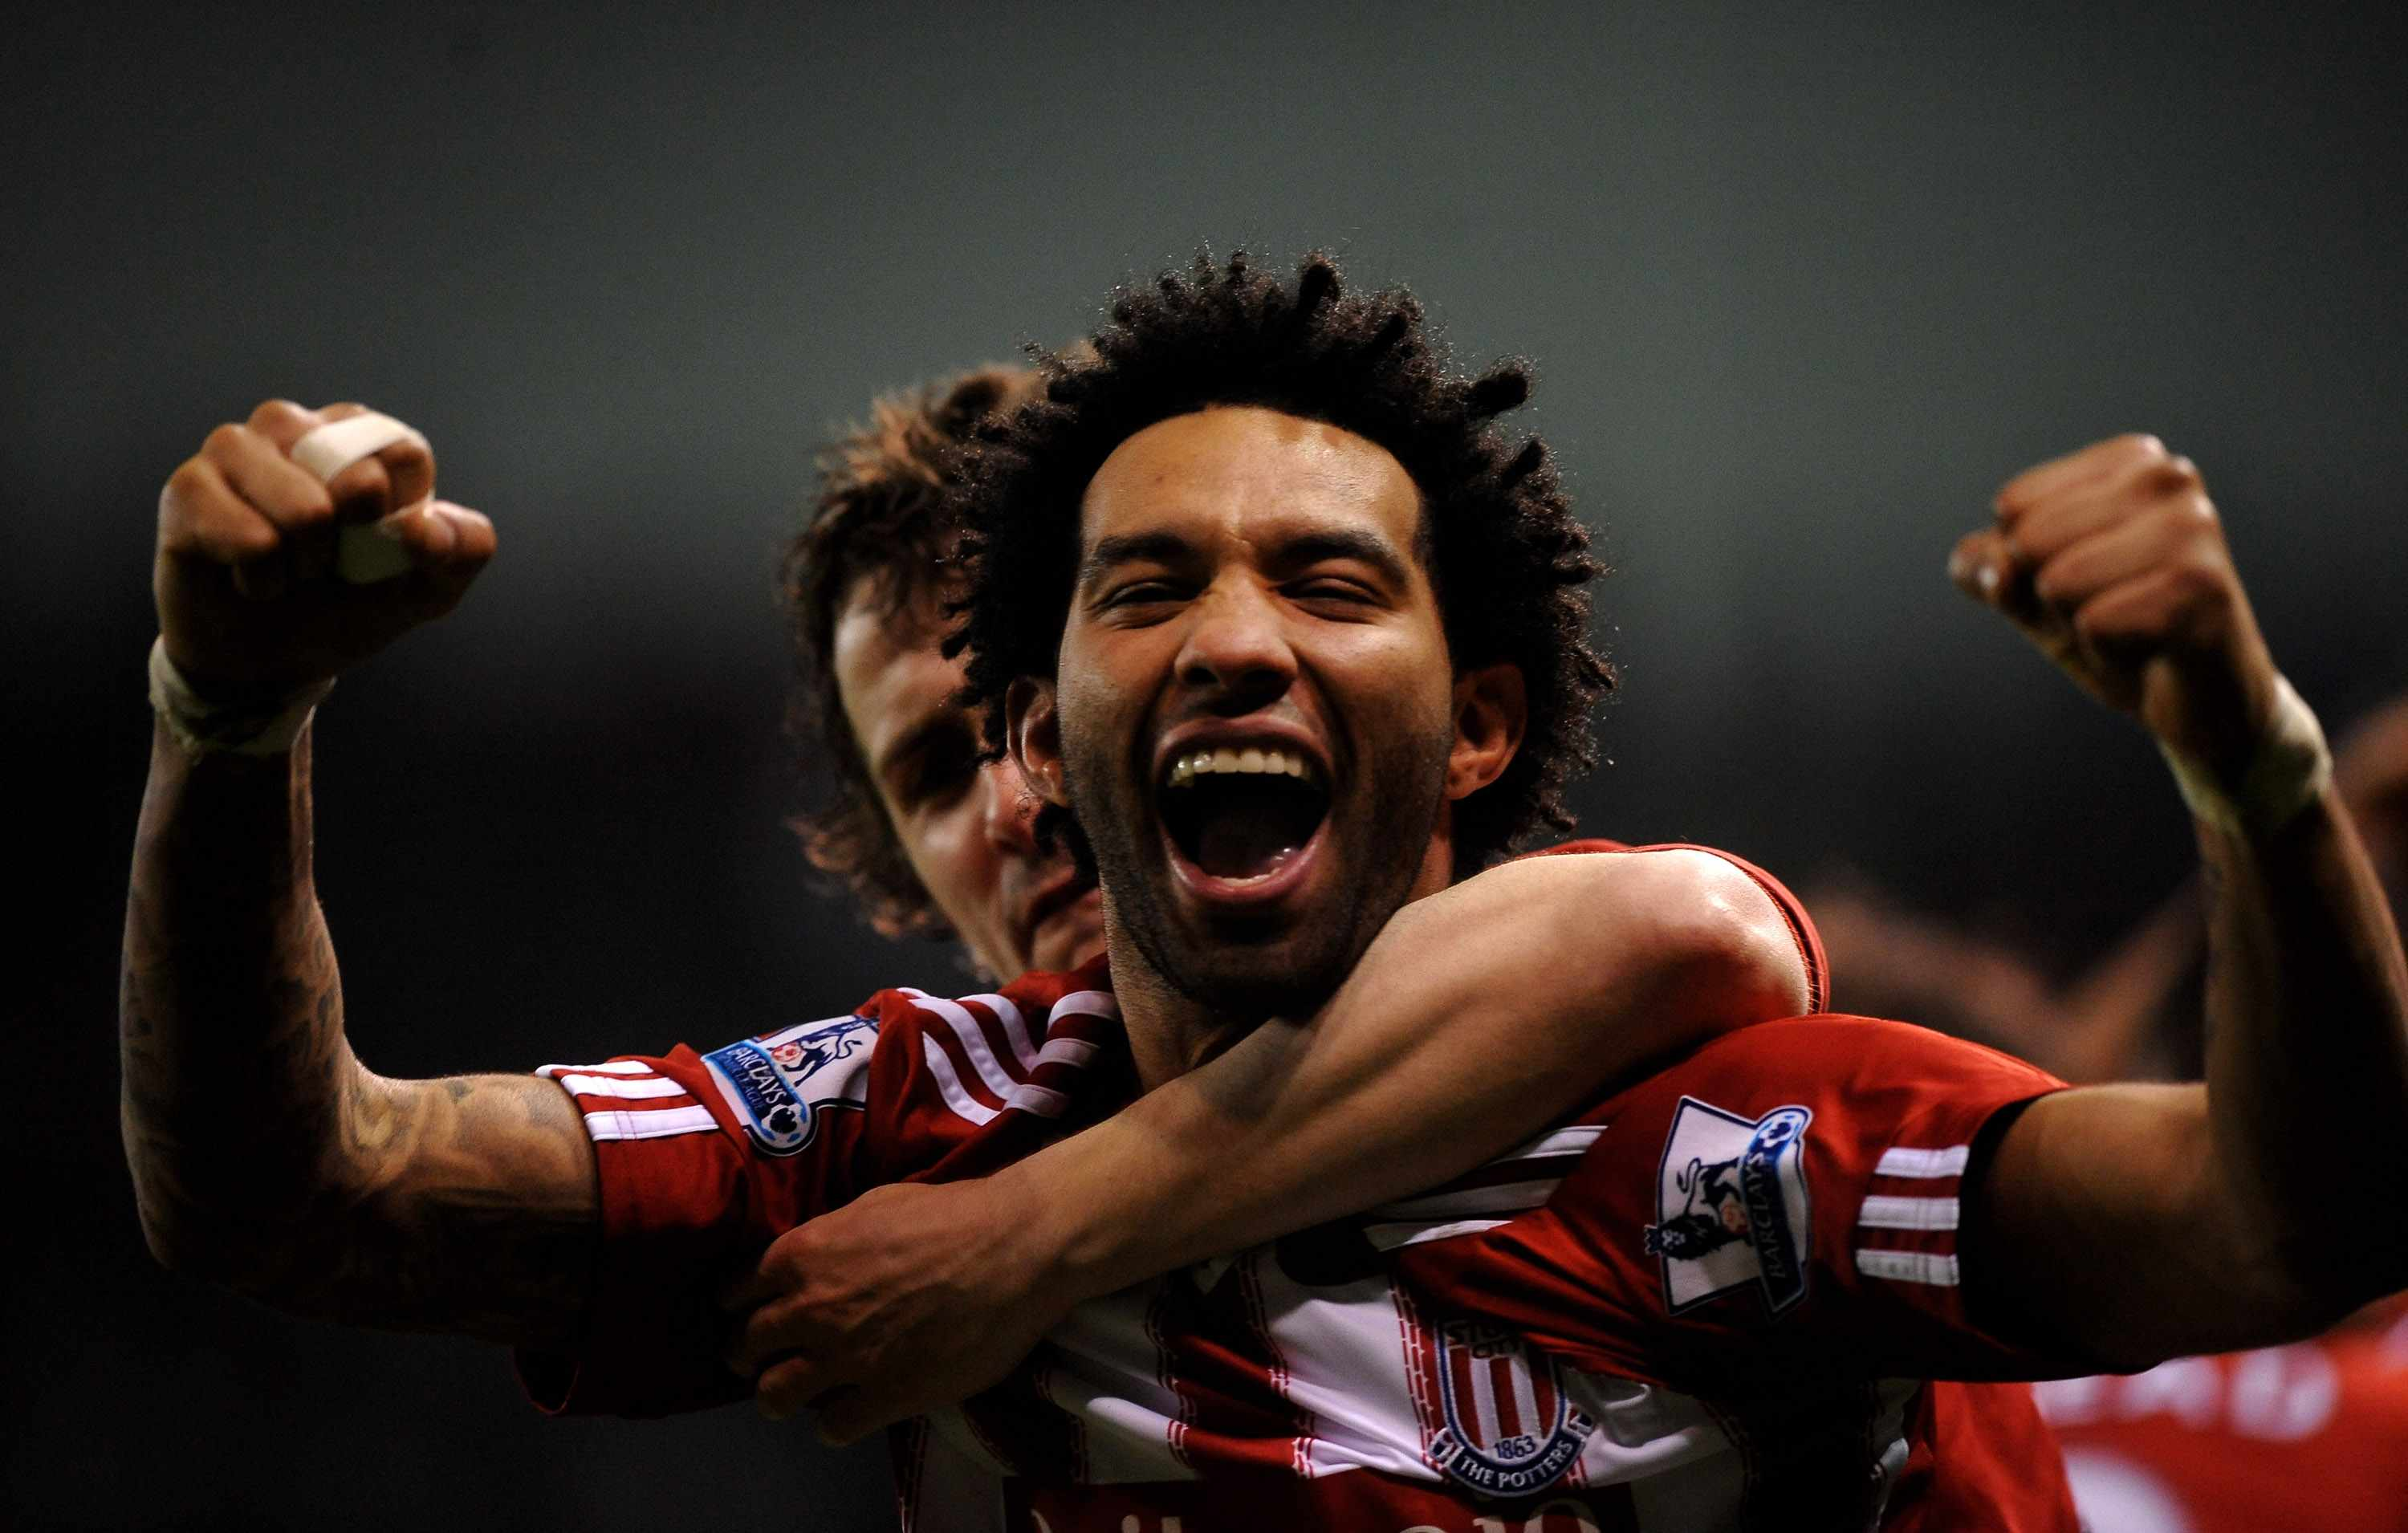 STOKE ON TRENT, ENGLAND - FEBRUARY 28:  Jermaine Pennant of Stoke City celebrates after team mate Rory Delap scored the opening goal during the Barclays Premier League match between Stoke City and West Bromwich Albion at The Britannia Stadium on February 28, 2011 in Stoke on Trent, England.  (Photo by Laurence Griffiths/Getty Images)